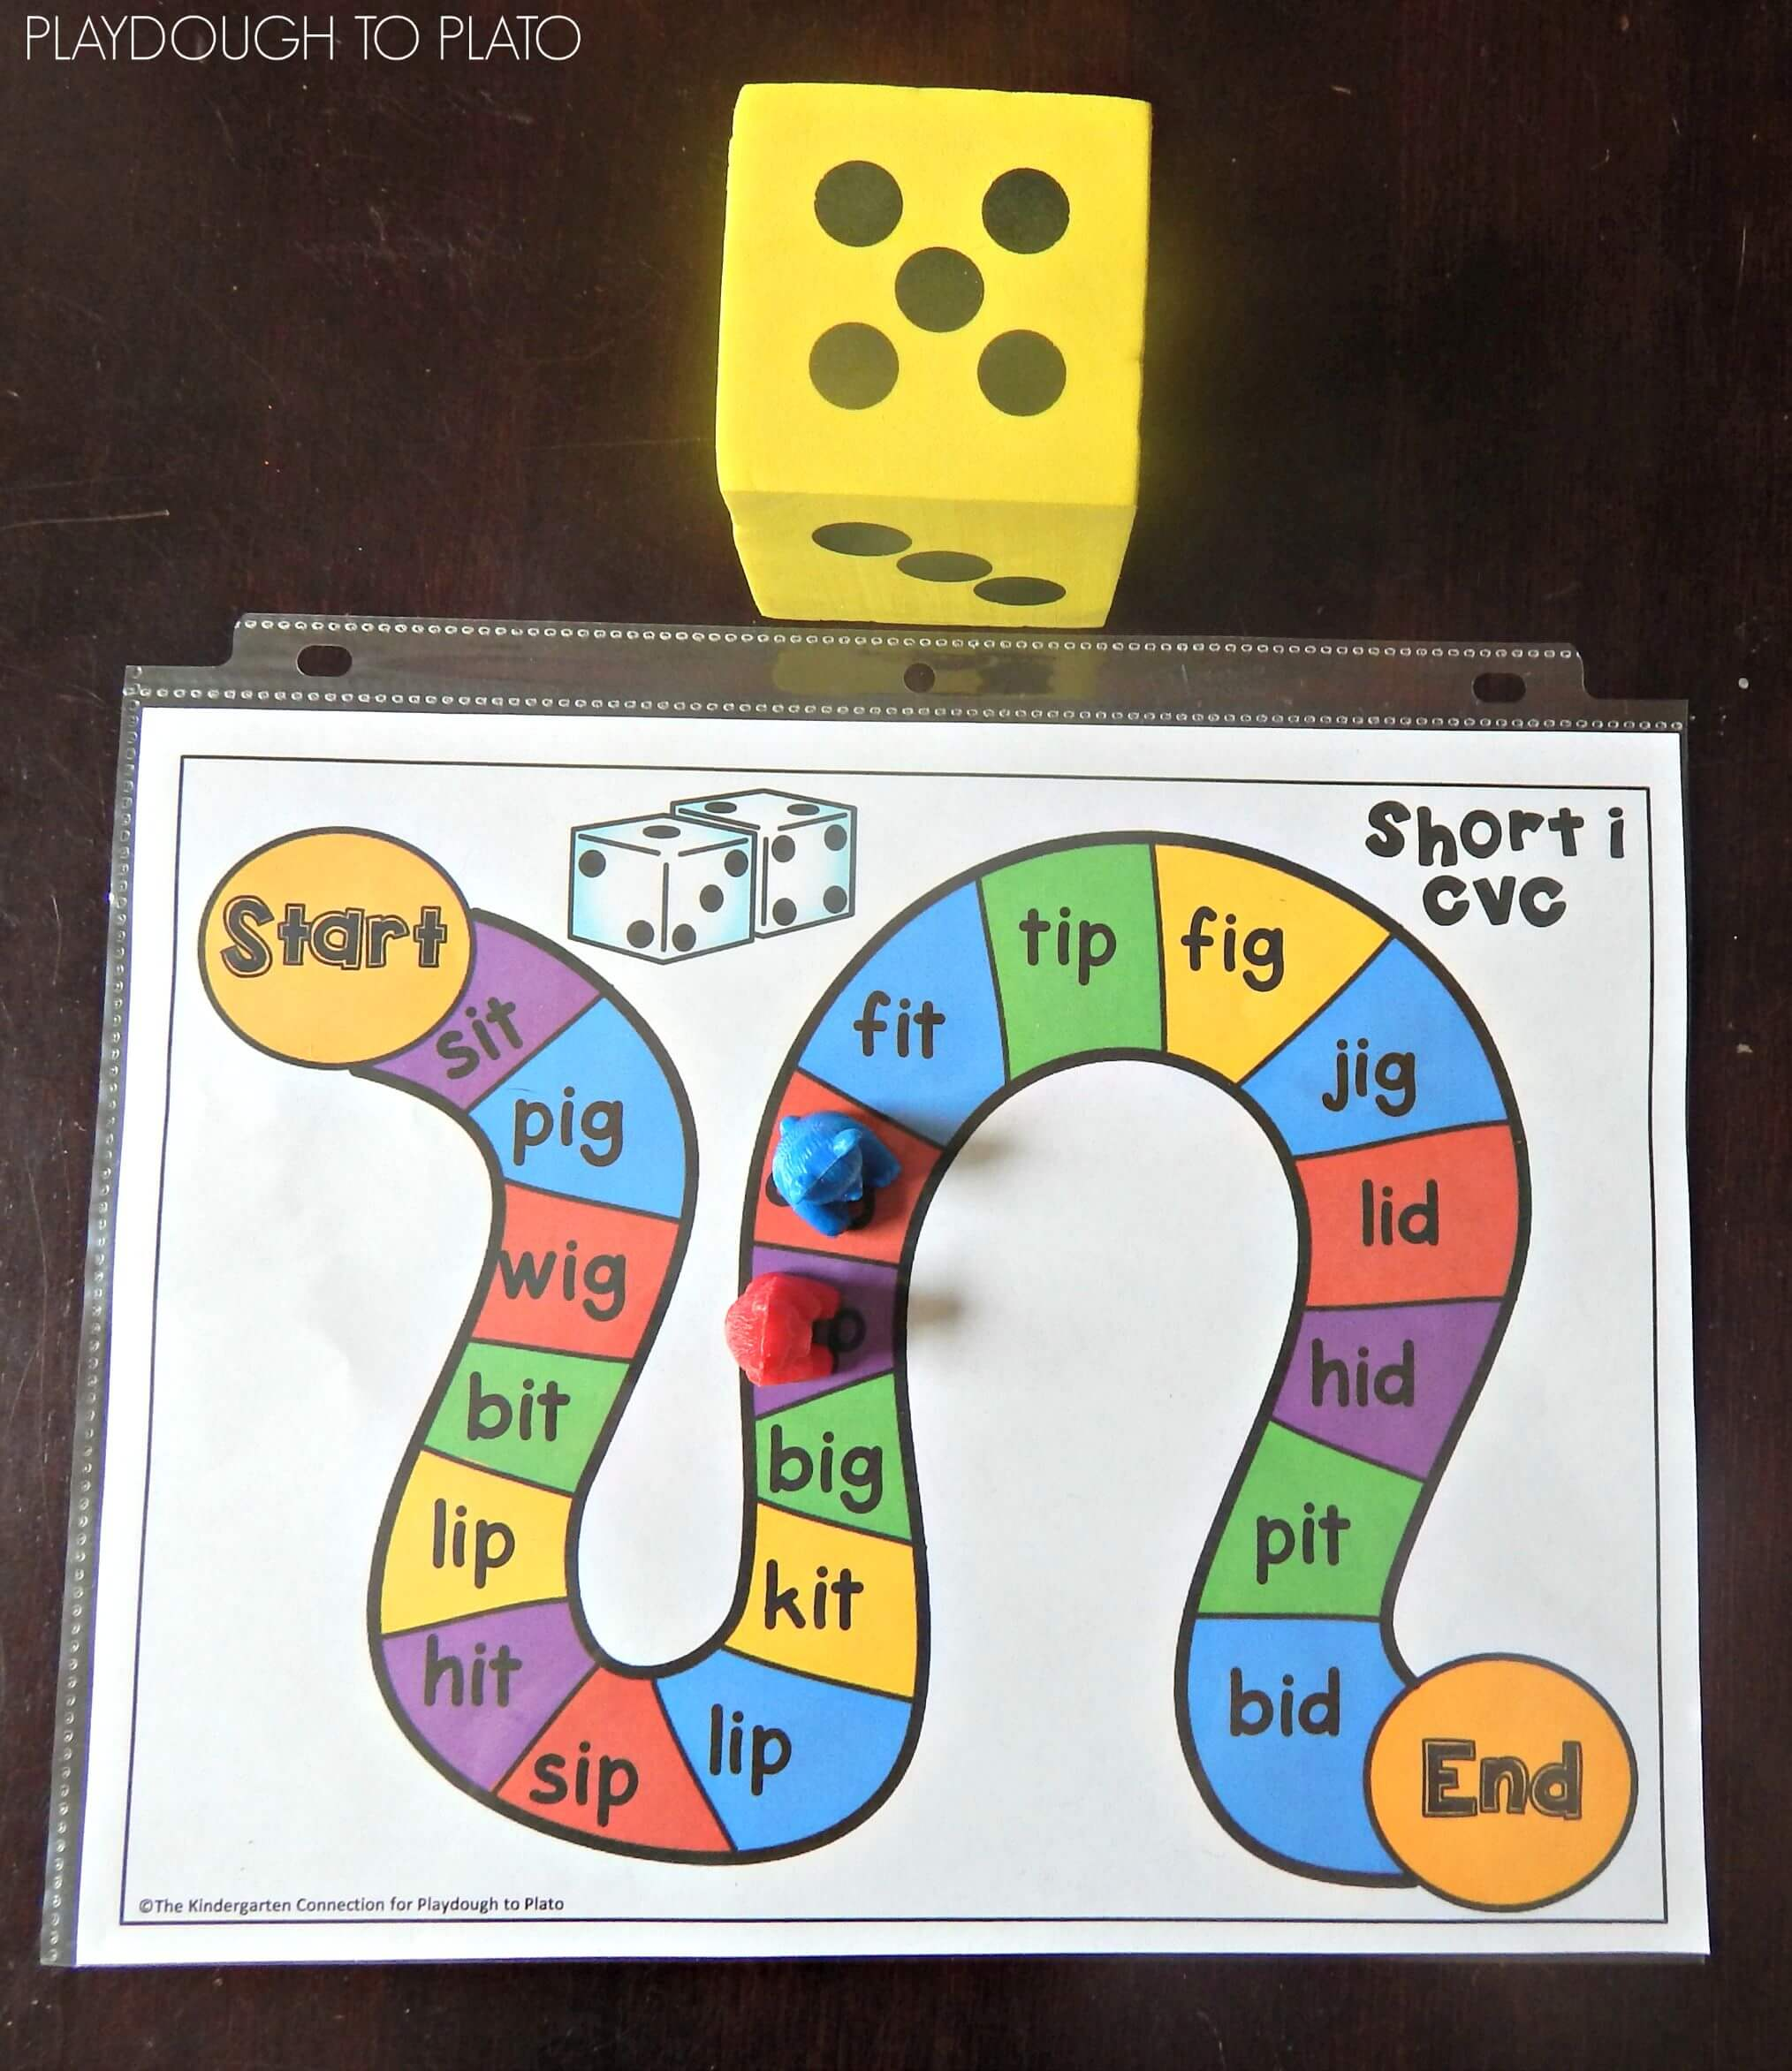 Free cvc word board games playdough to plato for How do you play go fish card game